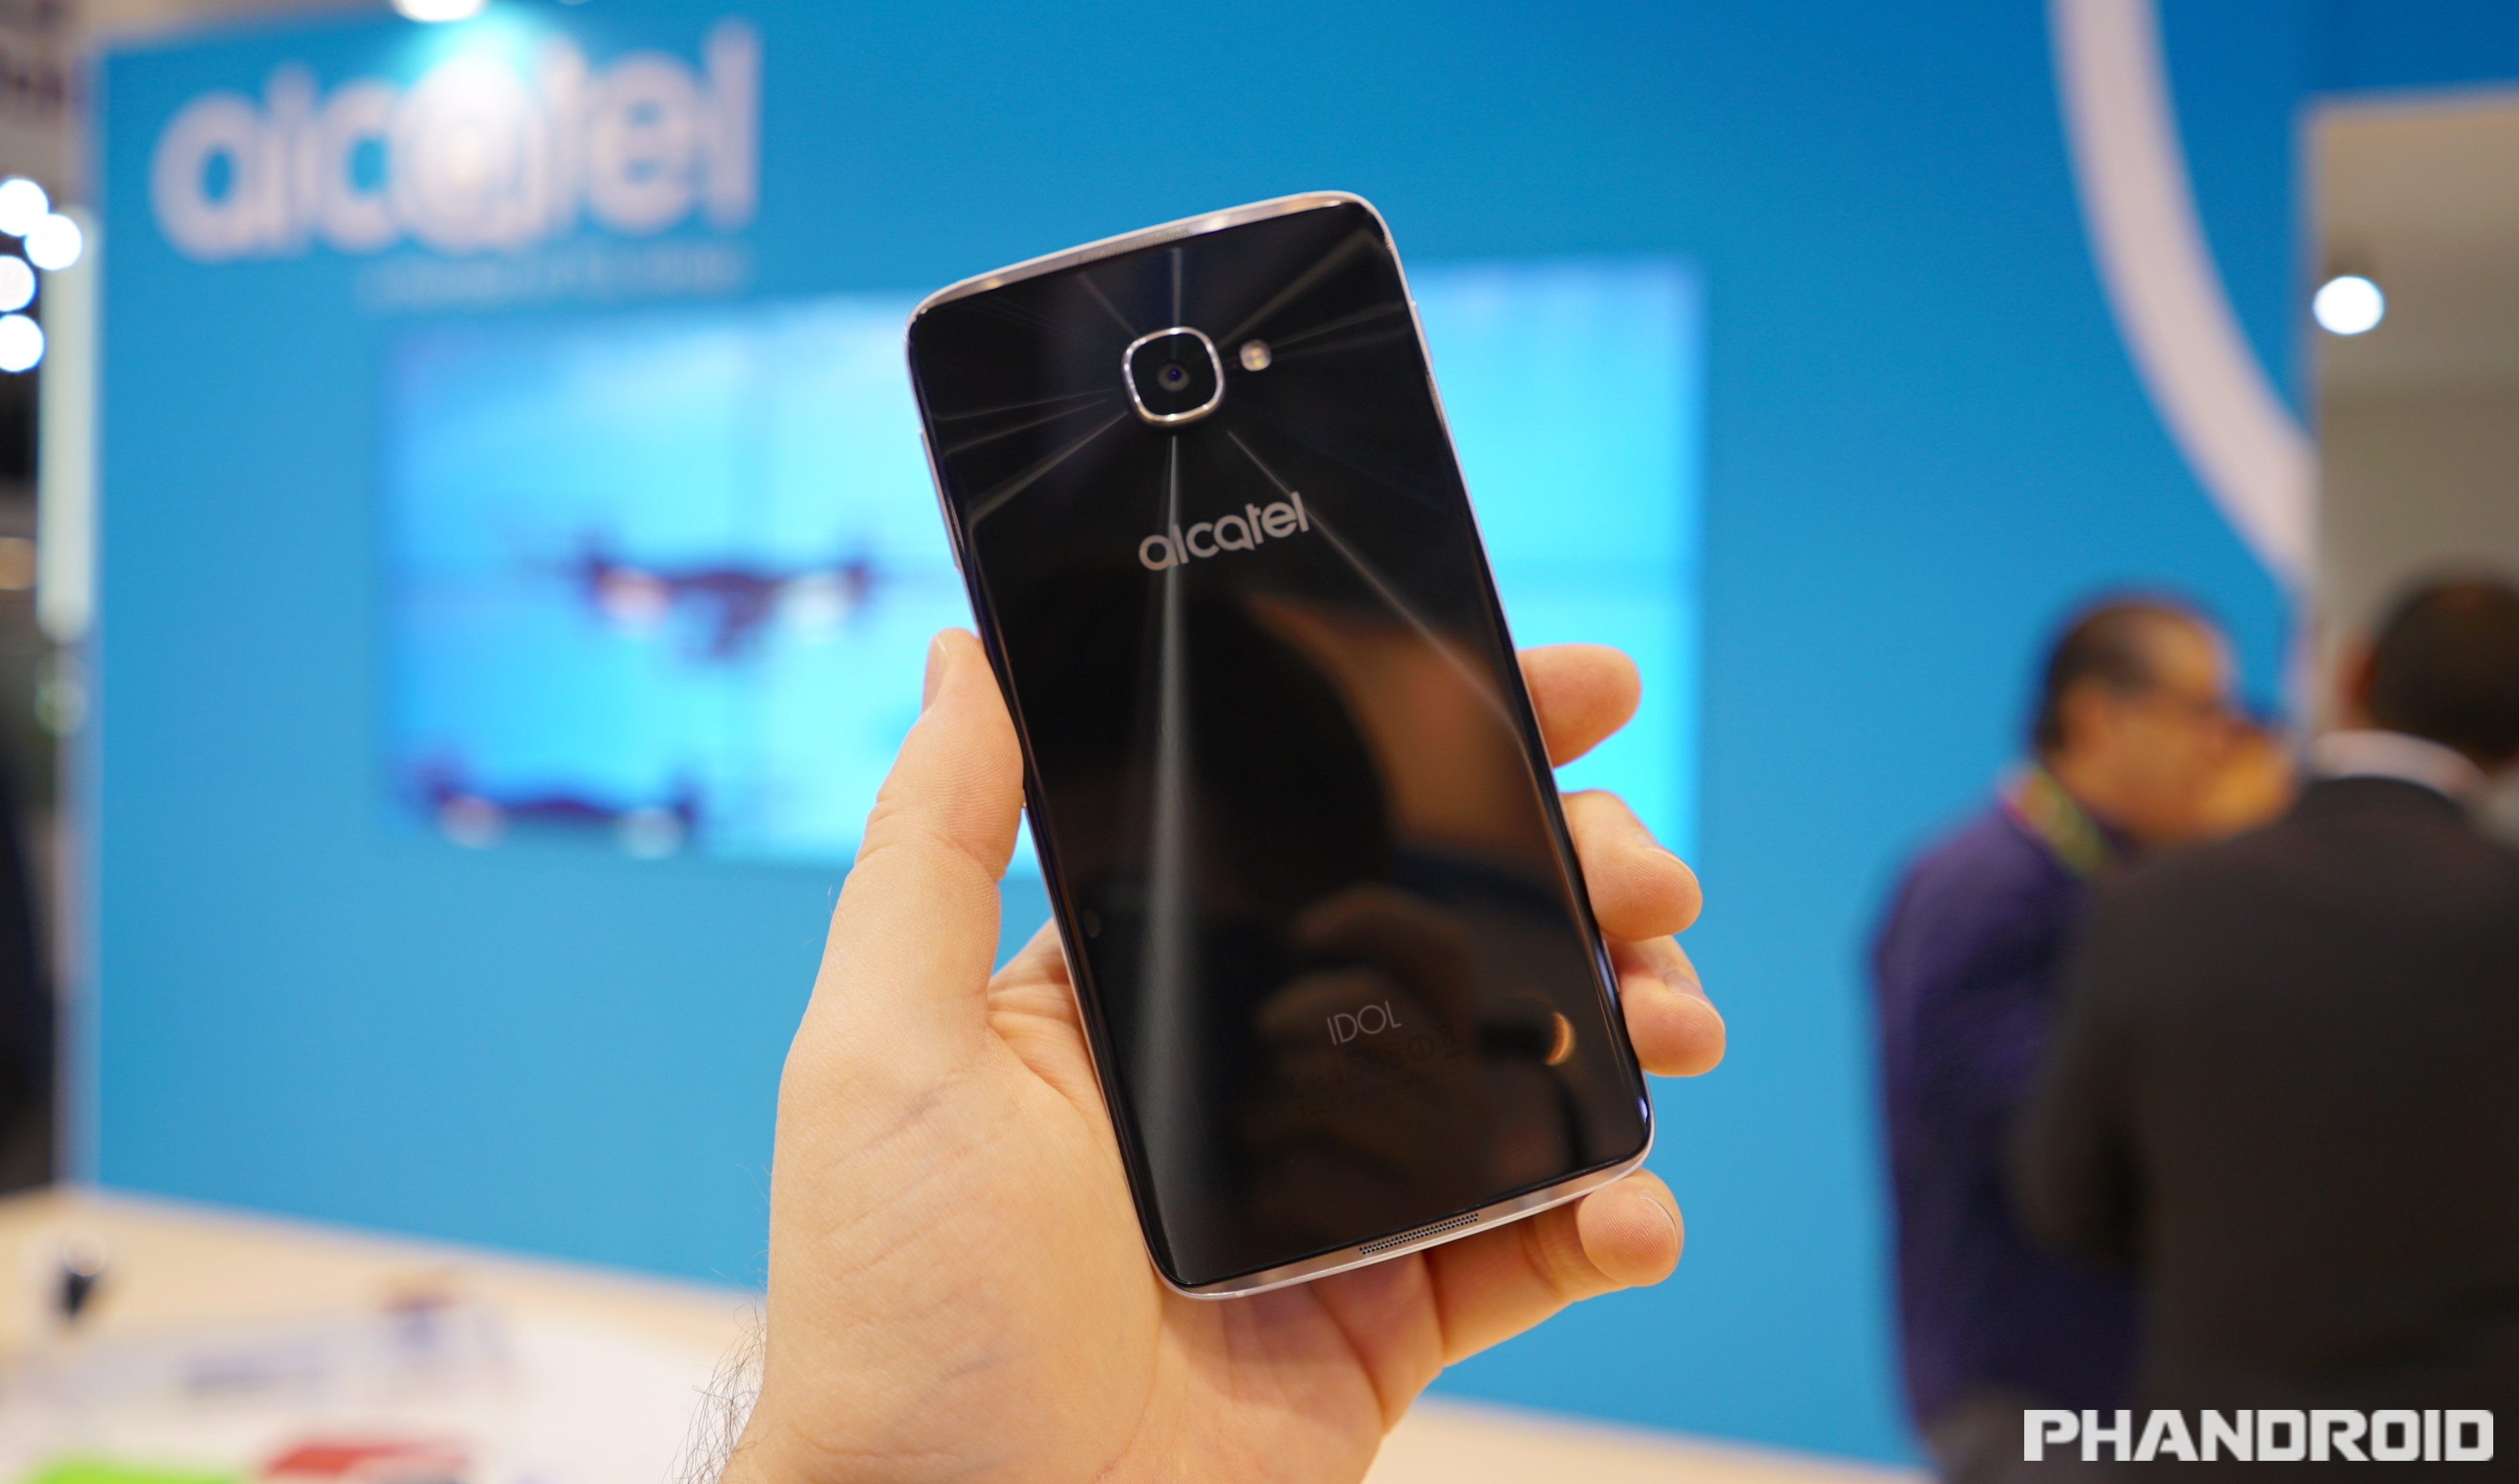 The Alcatel Idol 4S wants to be this year's best mid-range